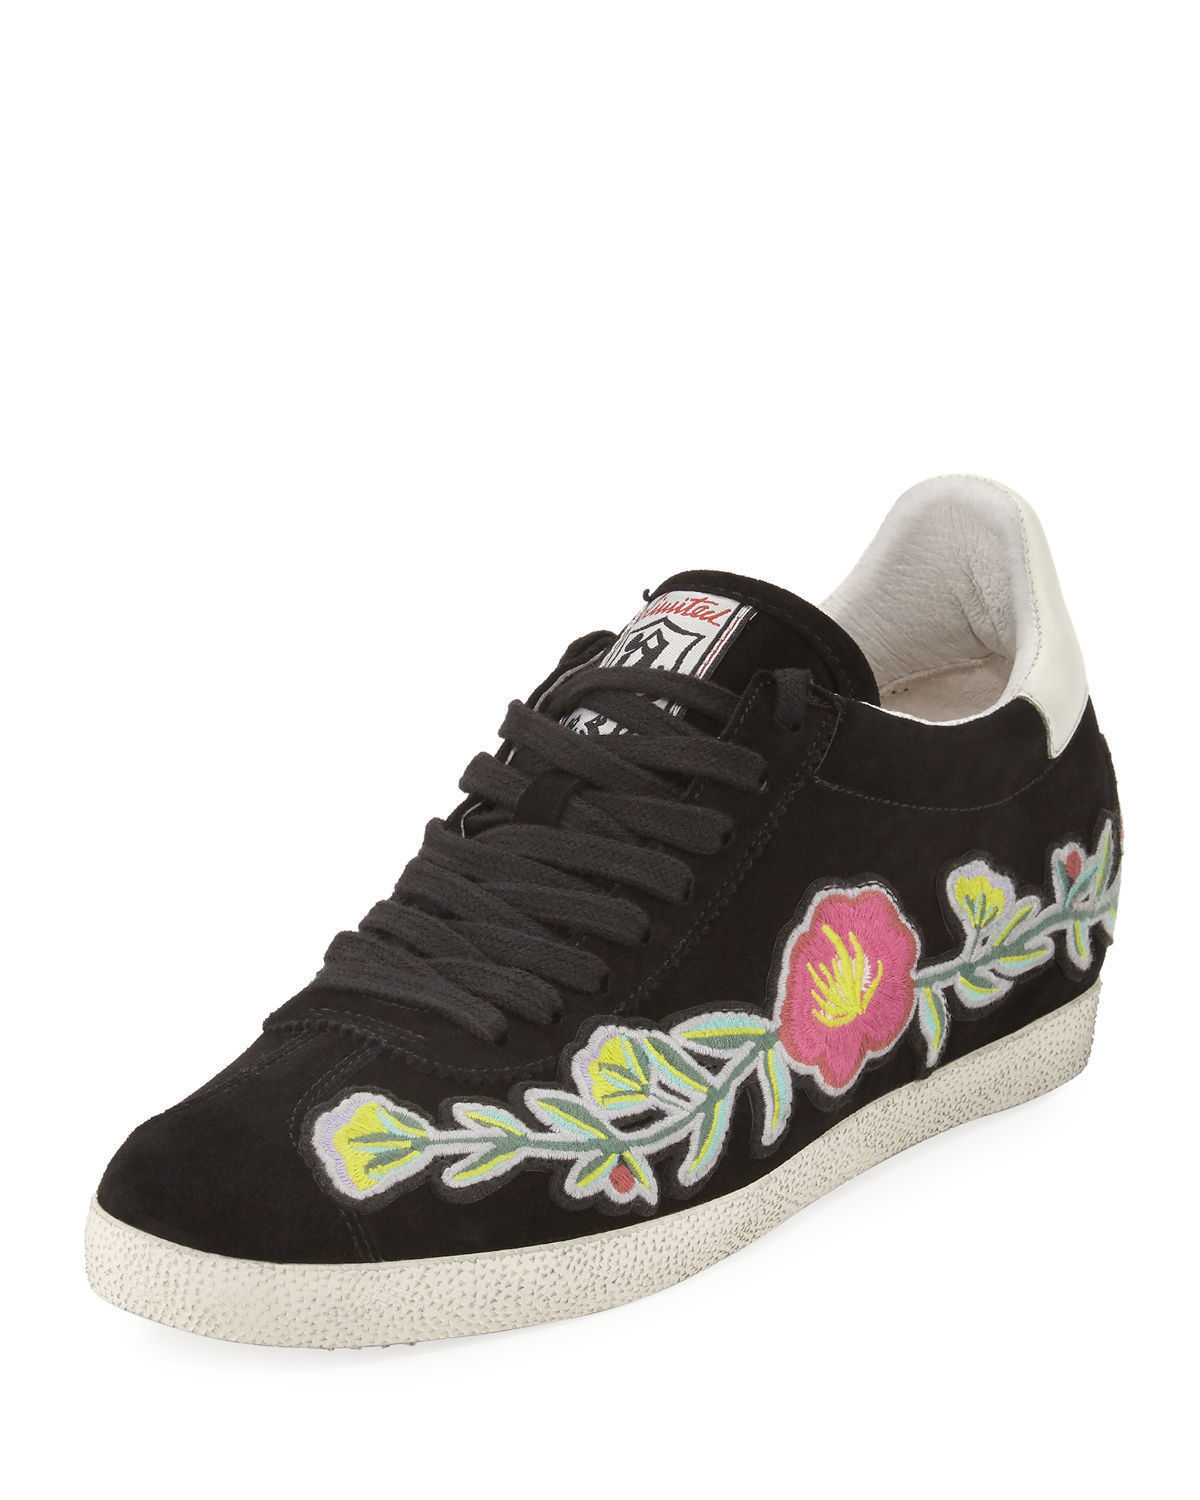 New $198 ASH Gull Black Floral Embroidery Sneakers Shoes Size 37 / 7 M